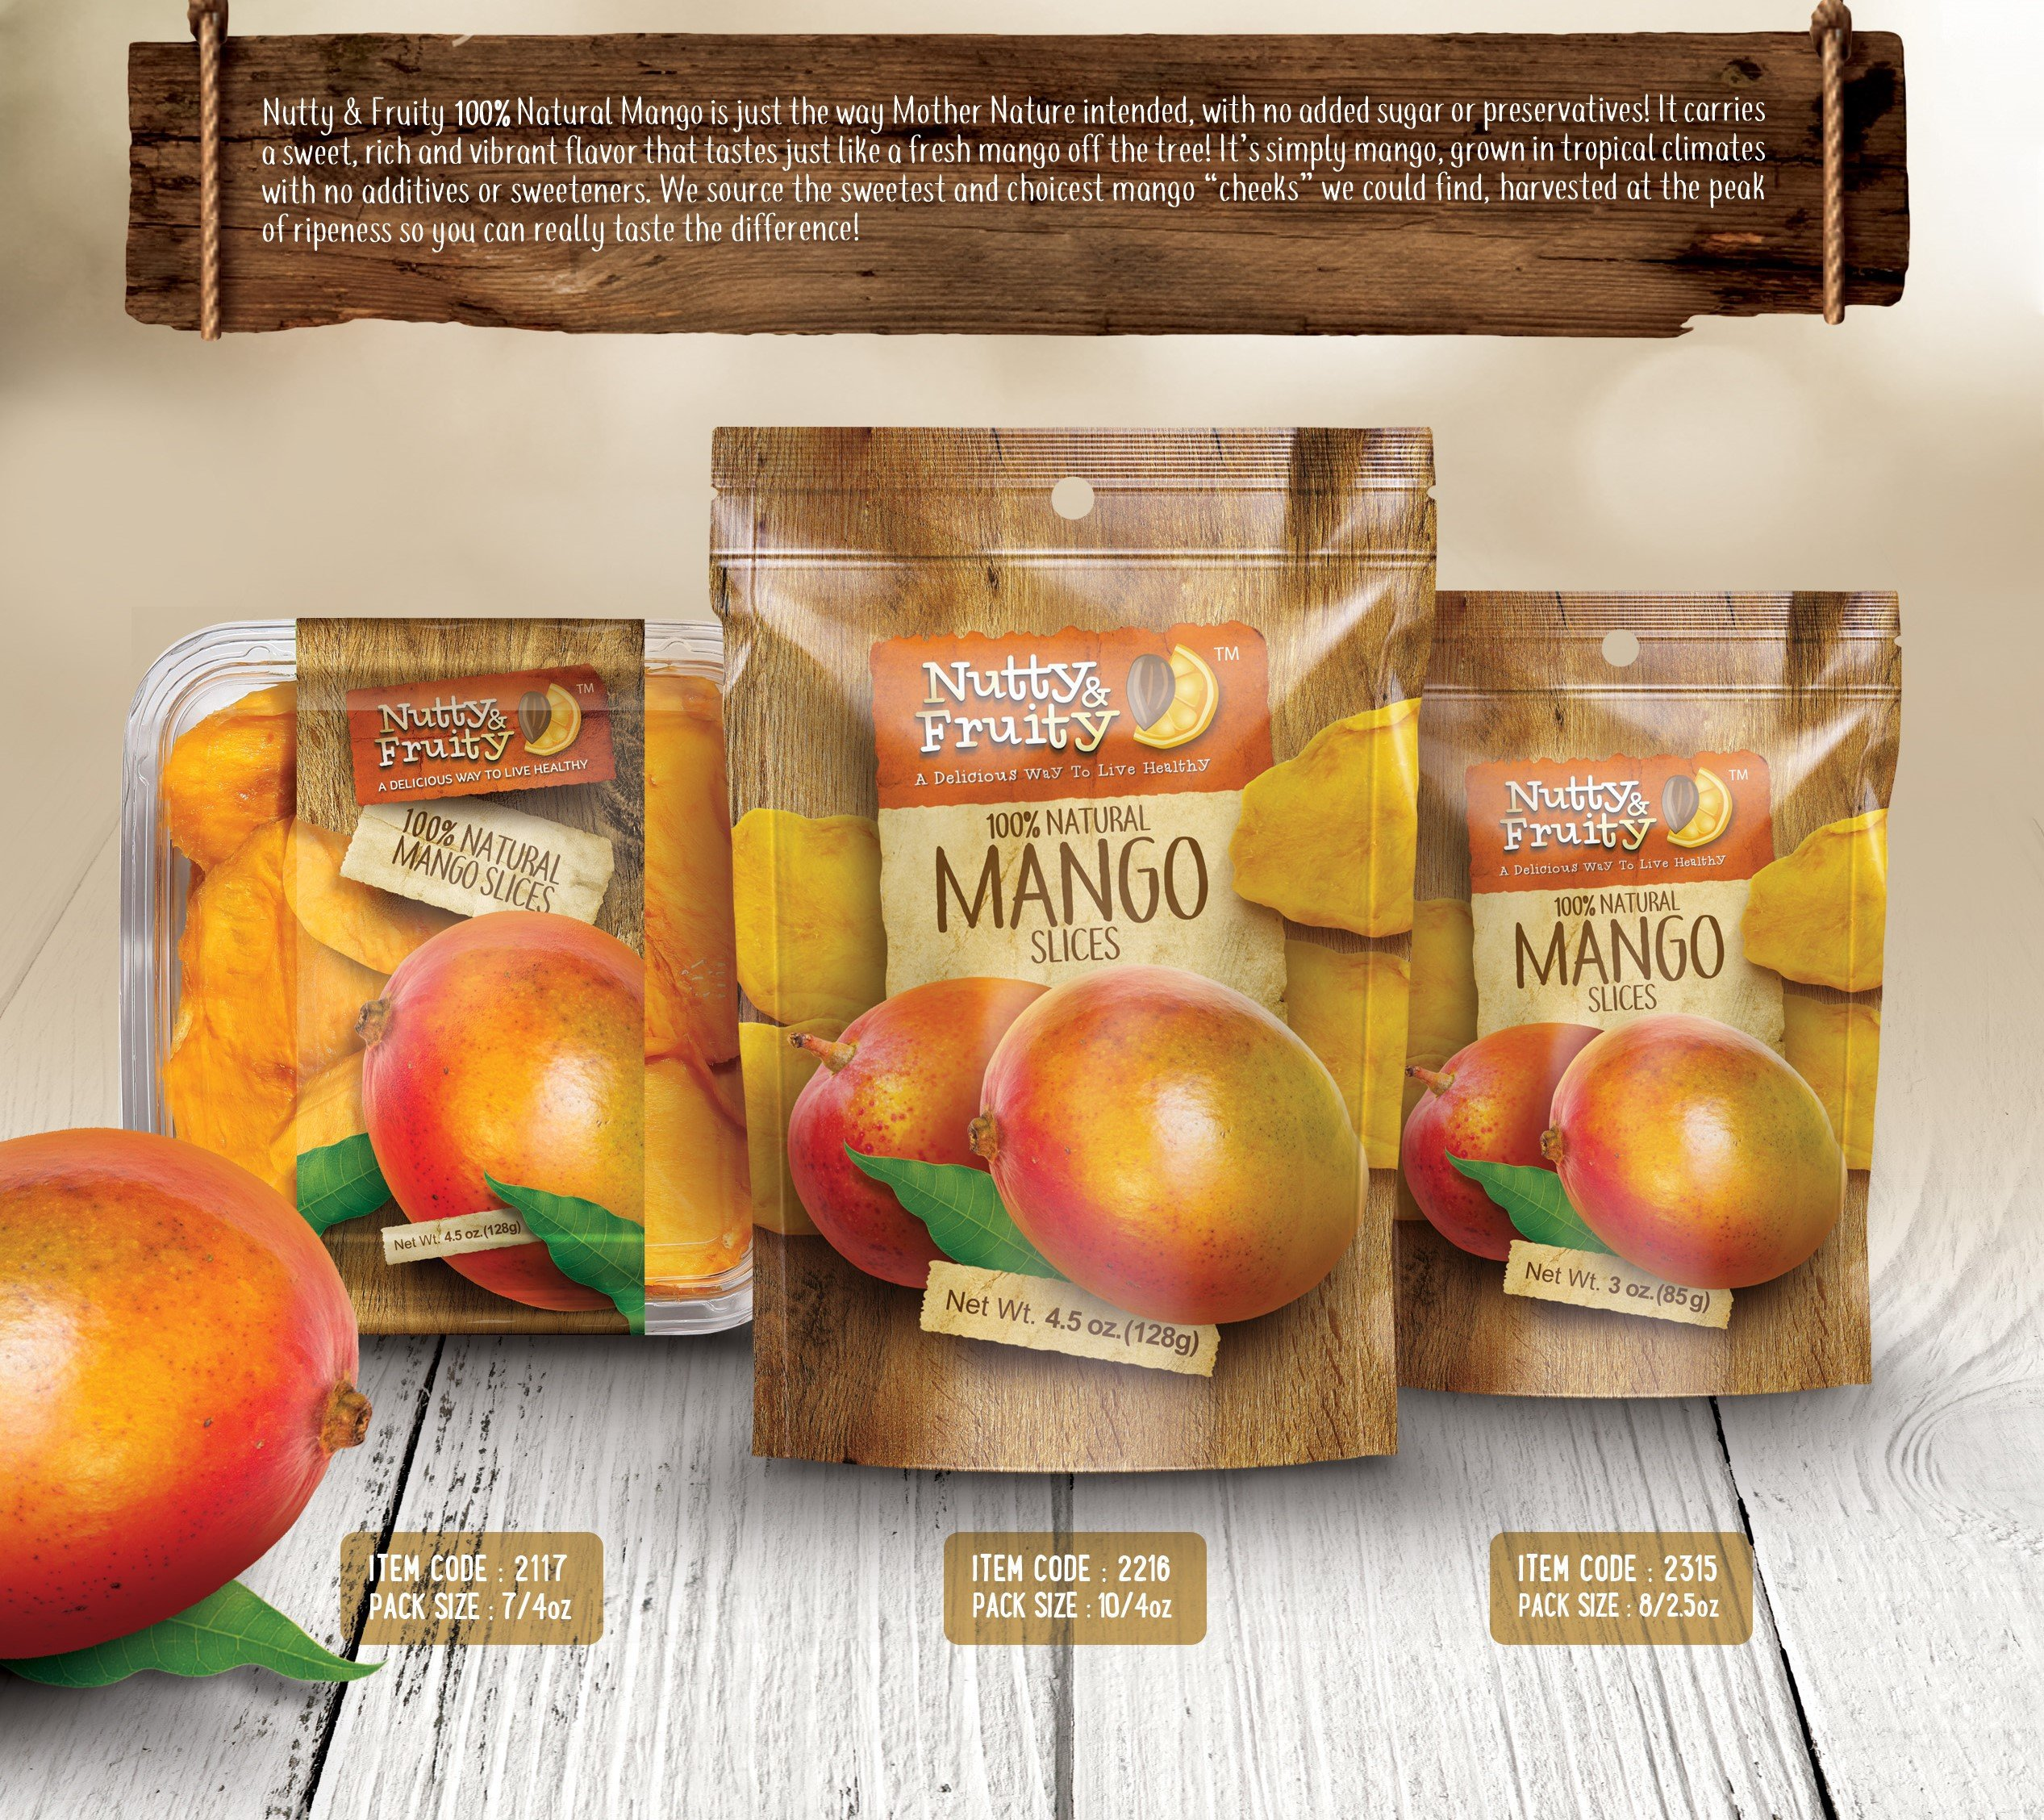 Dried Mango Slices By Nutty & Fruity - Natural With No Sugar Added - Unsulfured and No Preservatives added -This Healthy Snack is Gently Sliced Made With Real Mangoes And Great for the Trail and Home by Nutty and Fruity